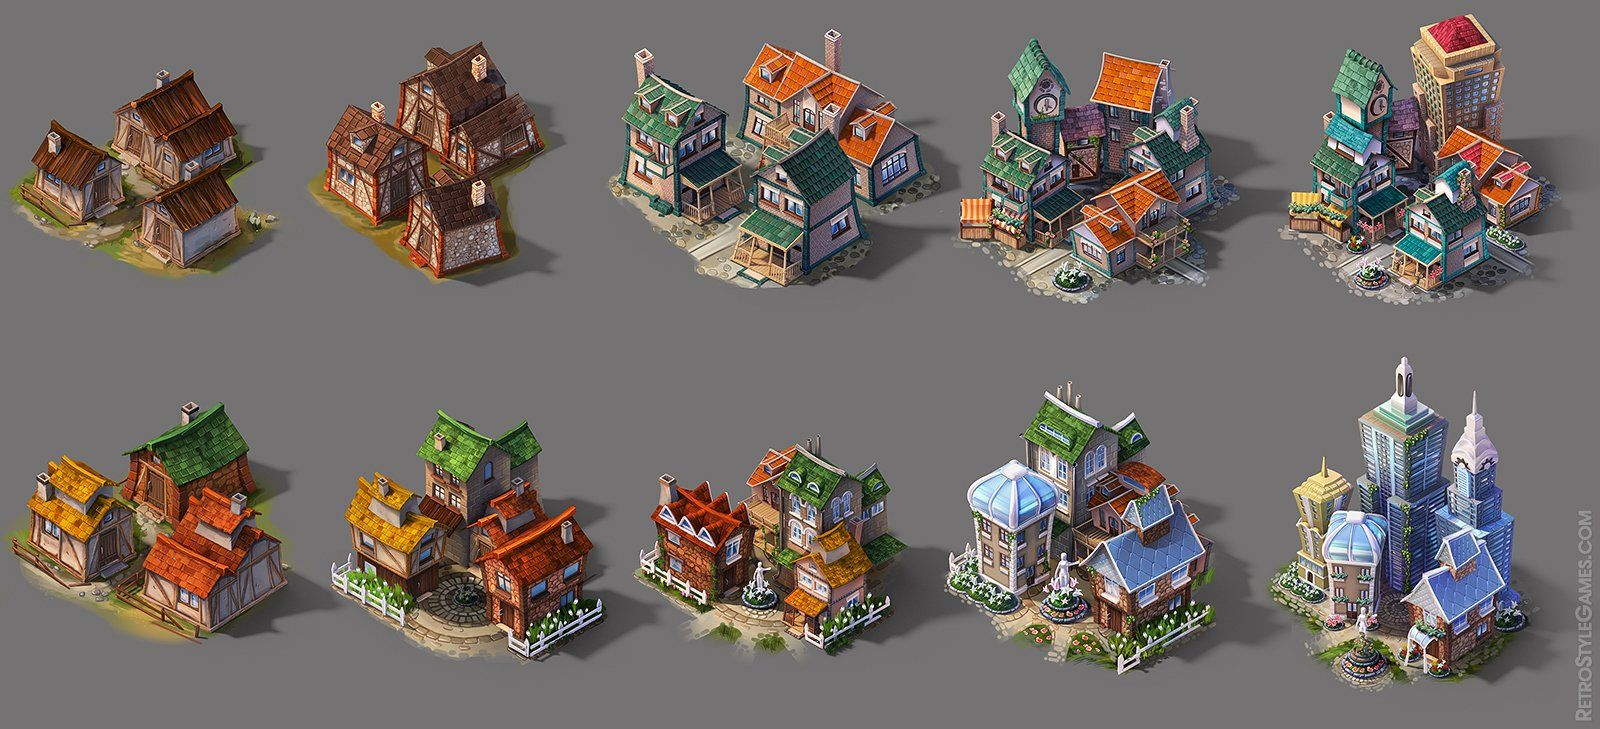 Isometric Concept Art Game art behance and rpg | Environment